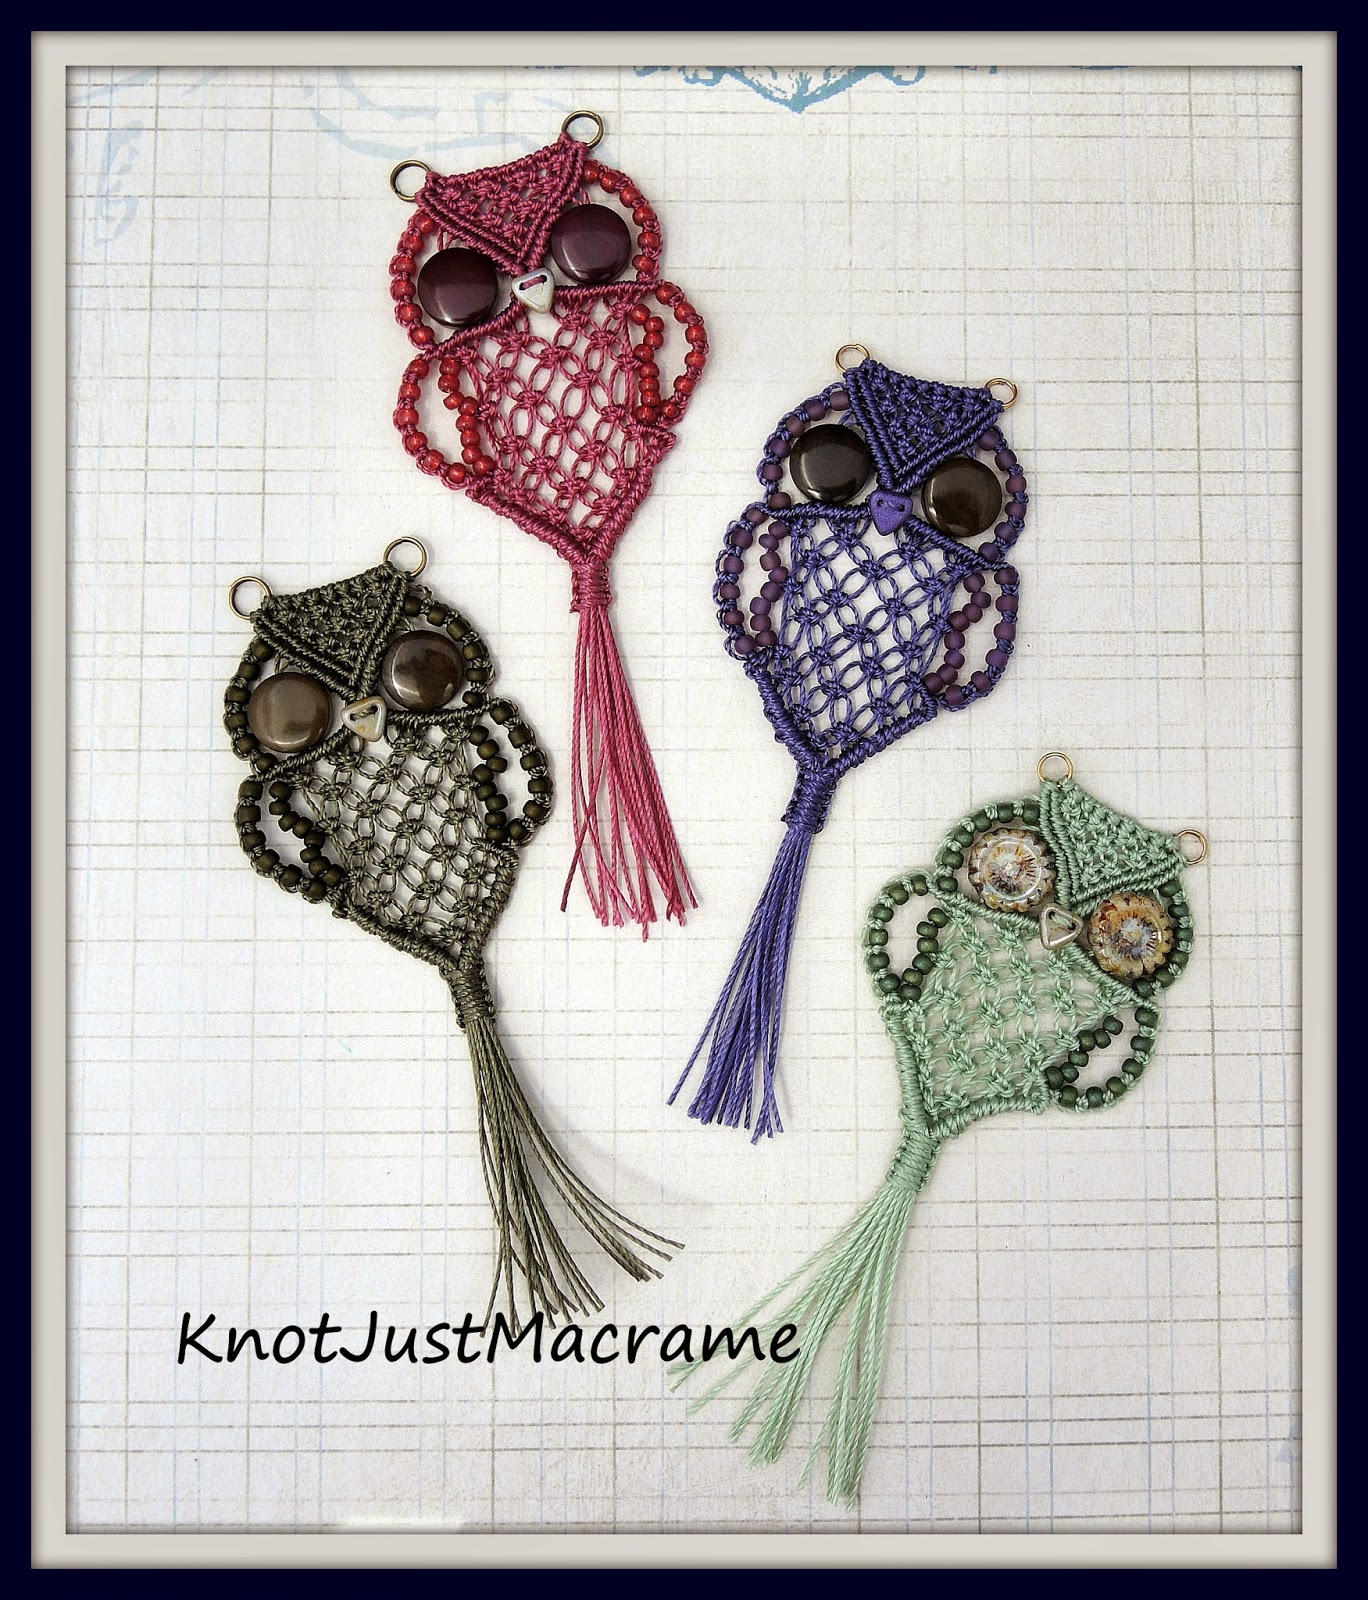 Retro macrame owls, a throwback to the 1970's!